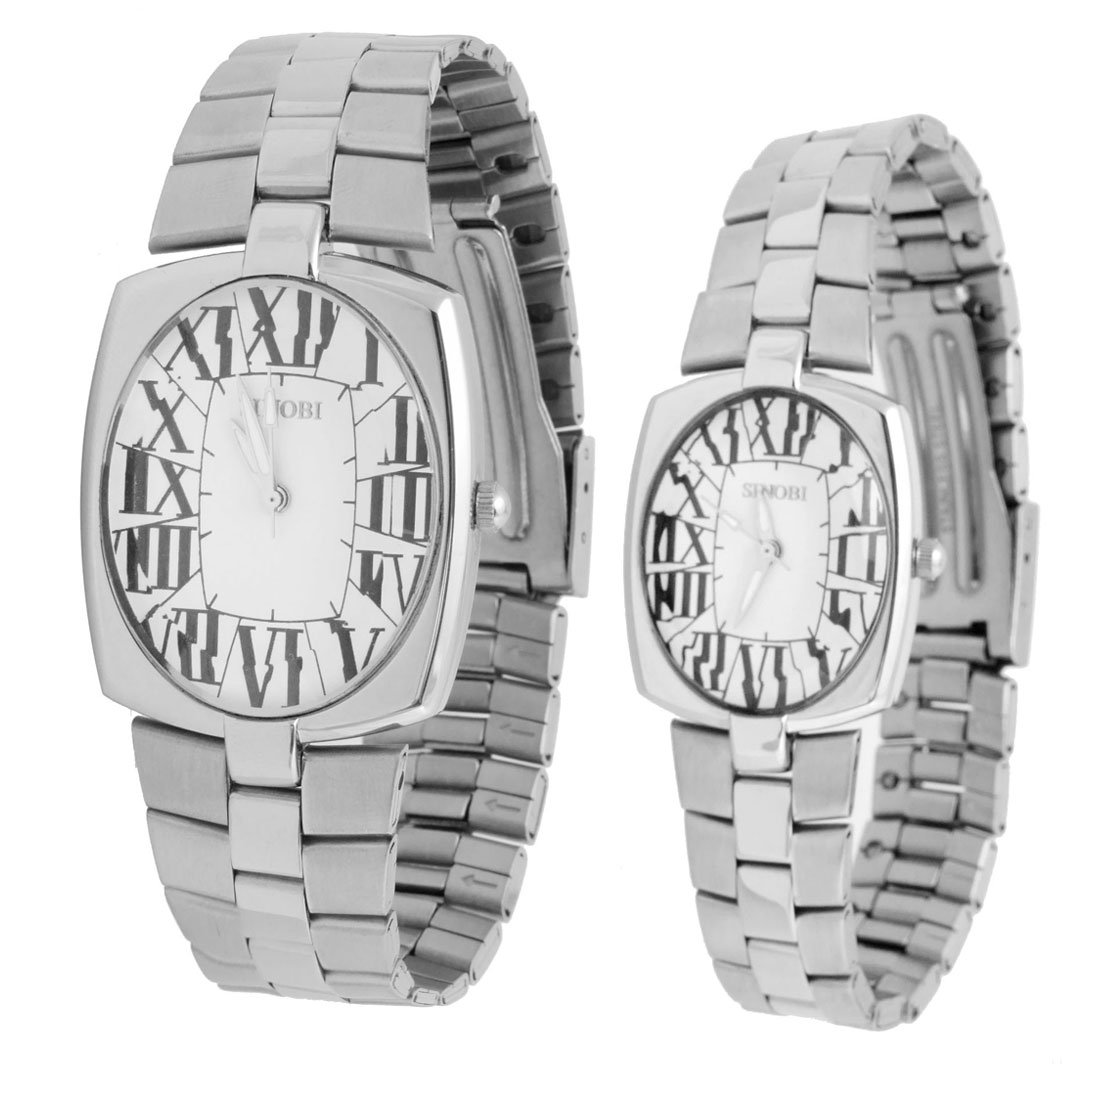 Fashion Jewelry One Pair of Silver Watches for Man's & Ladies Fere Wristwatch